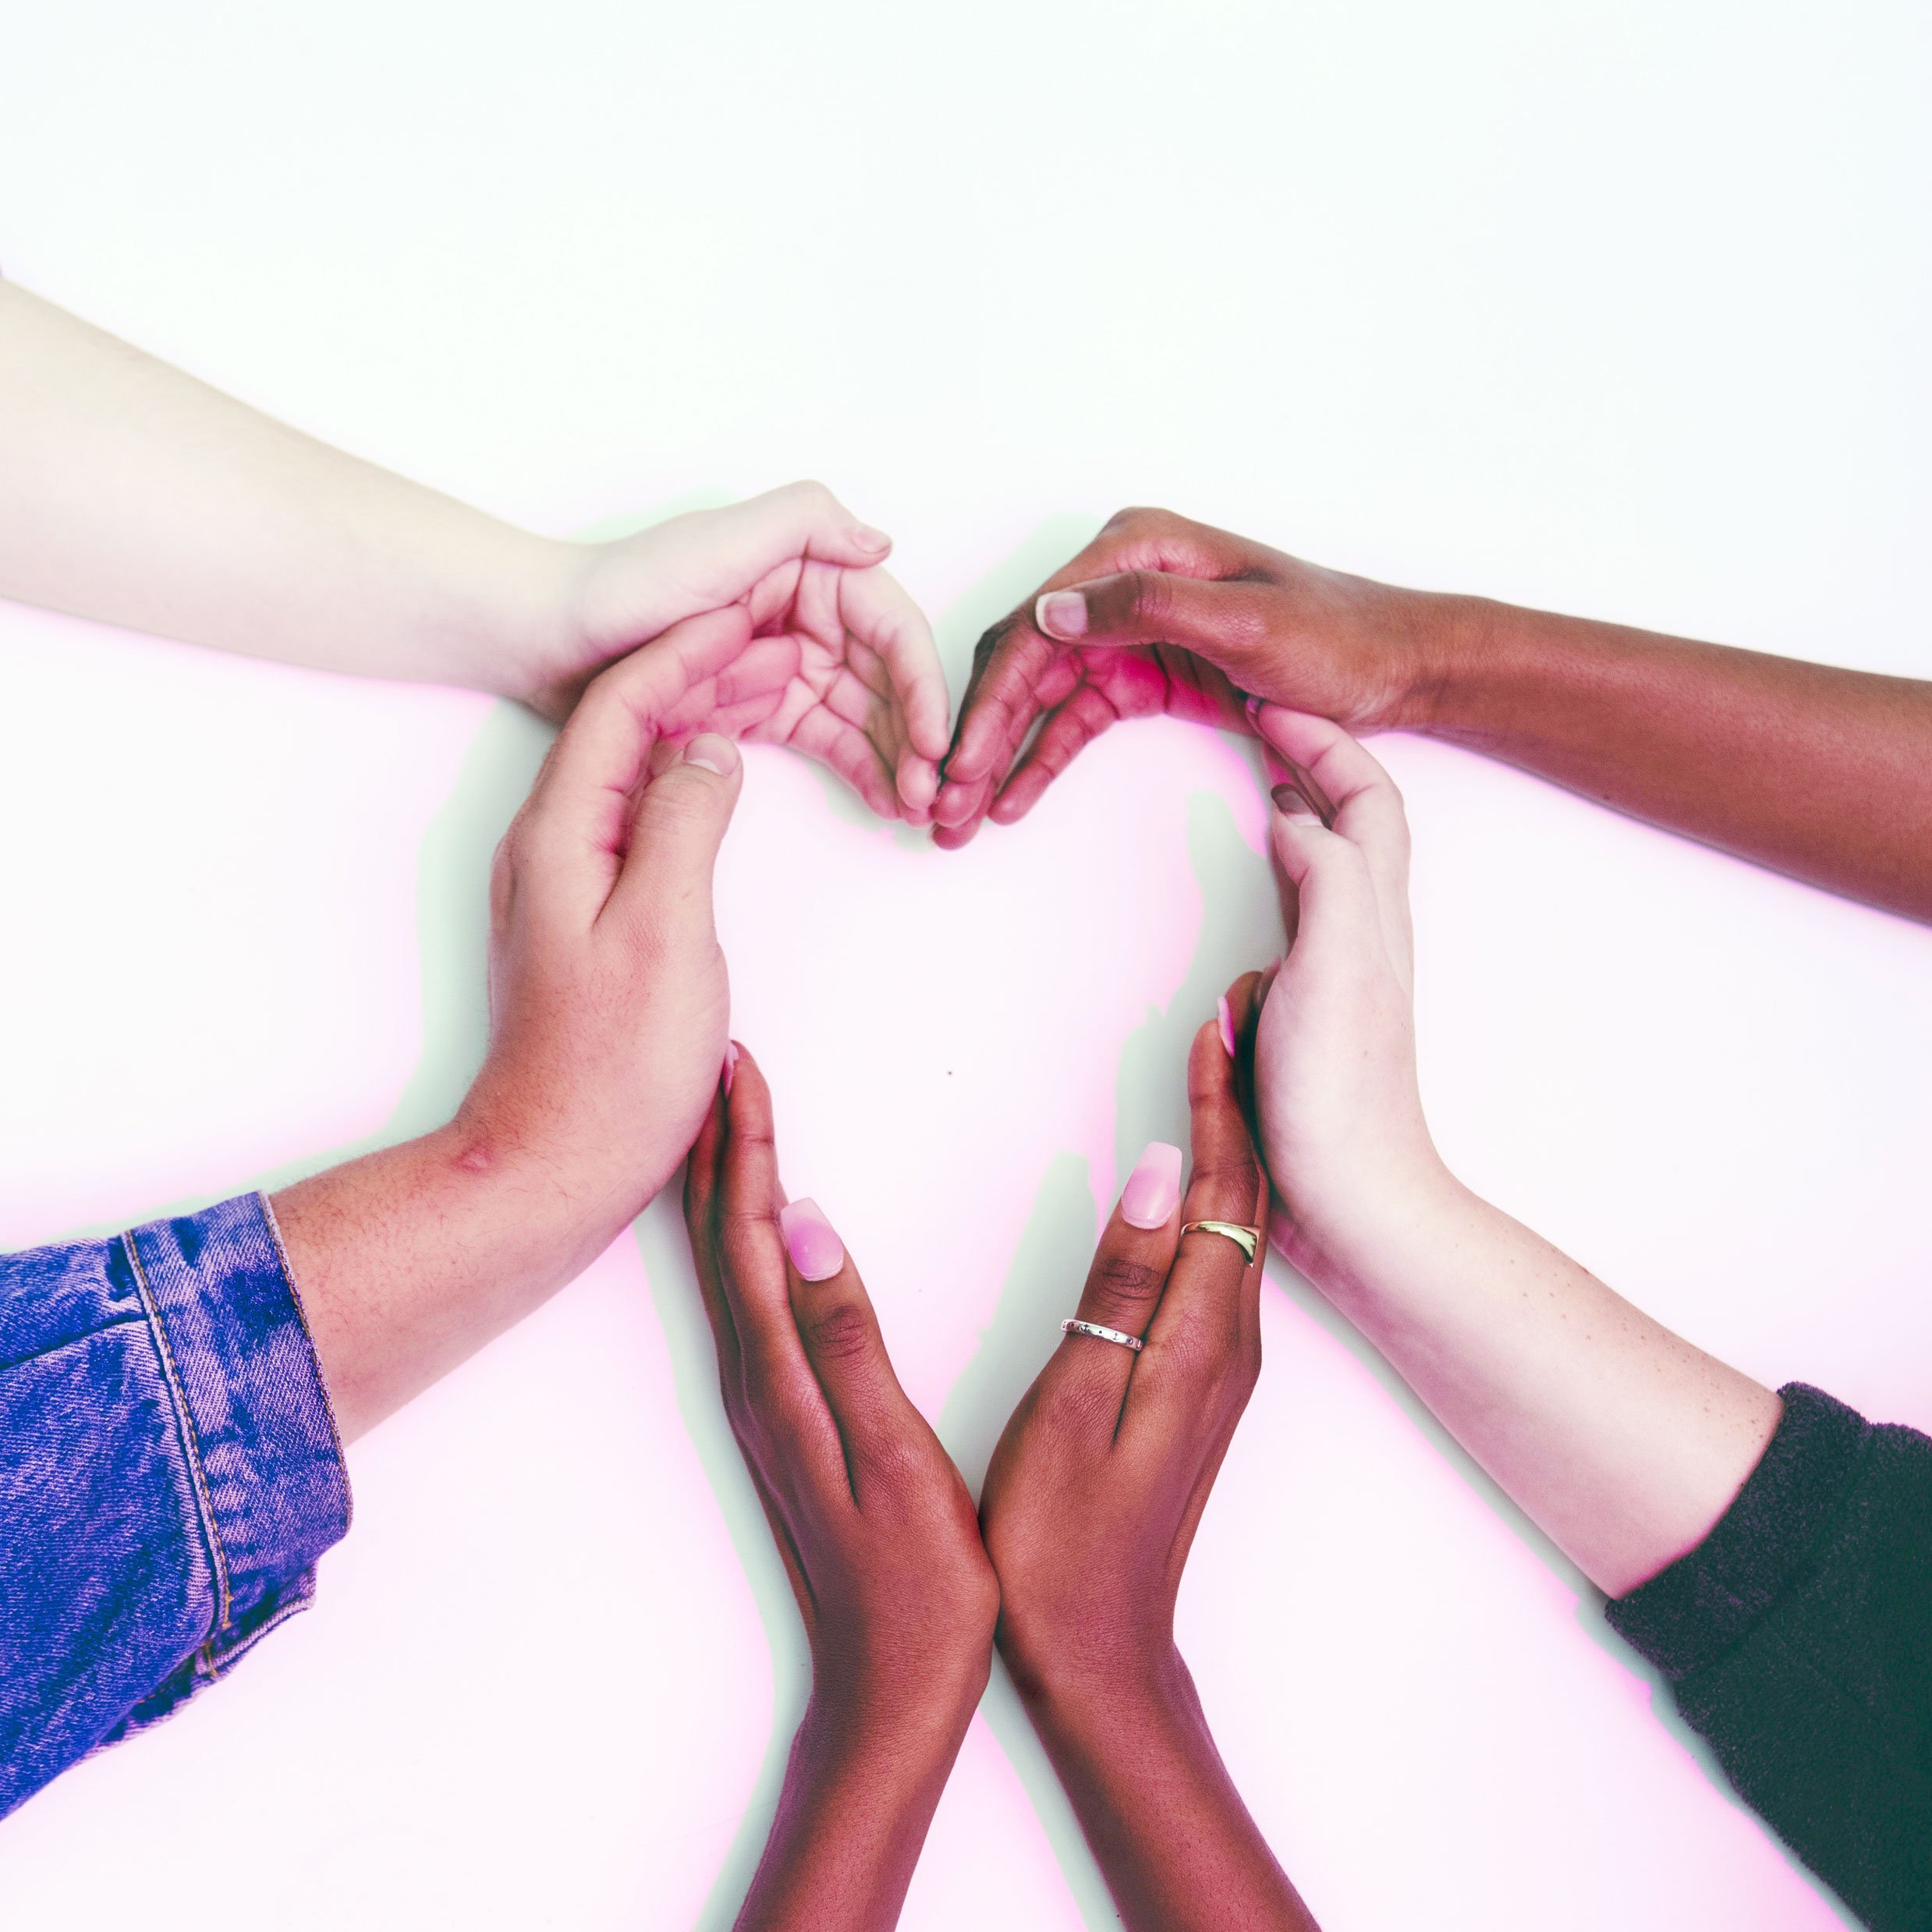 diverse hands forming heart shape